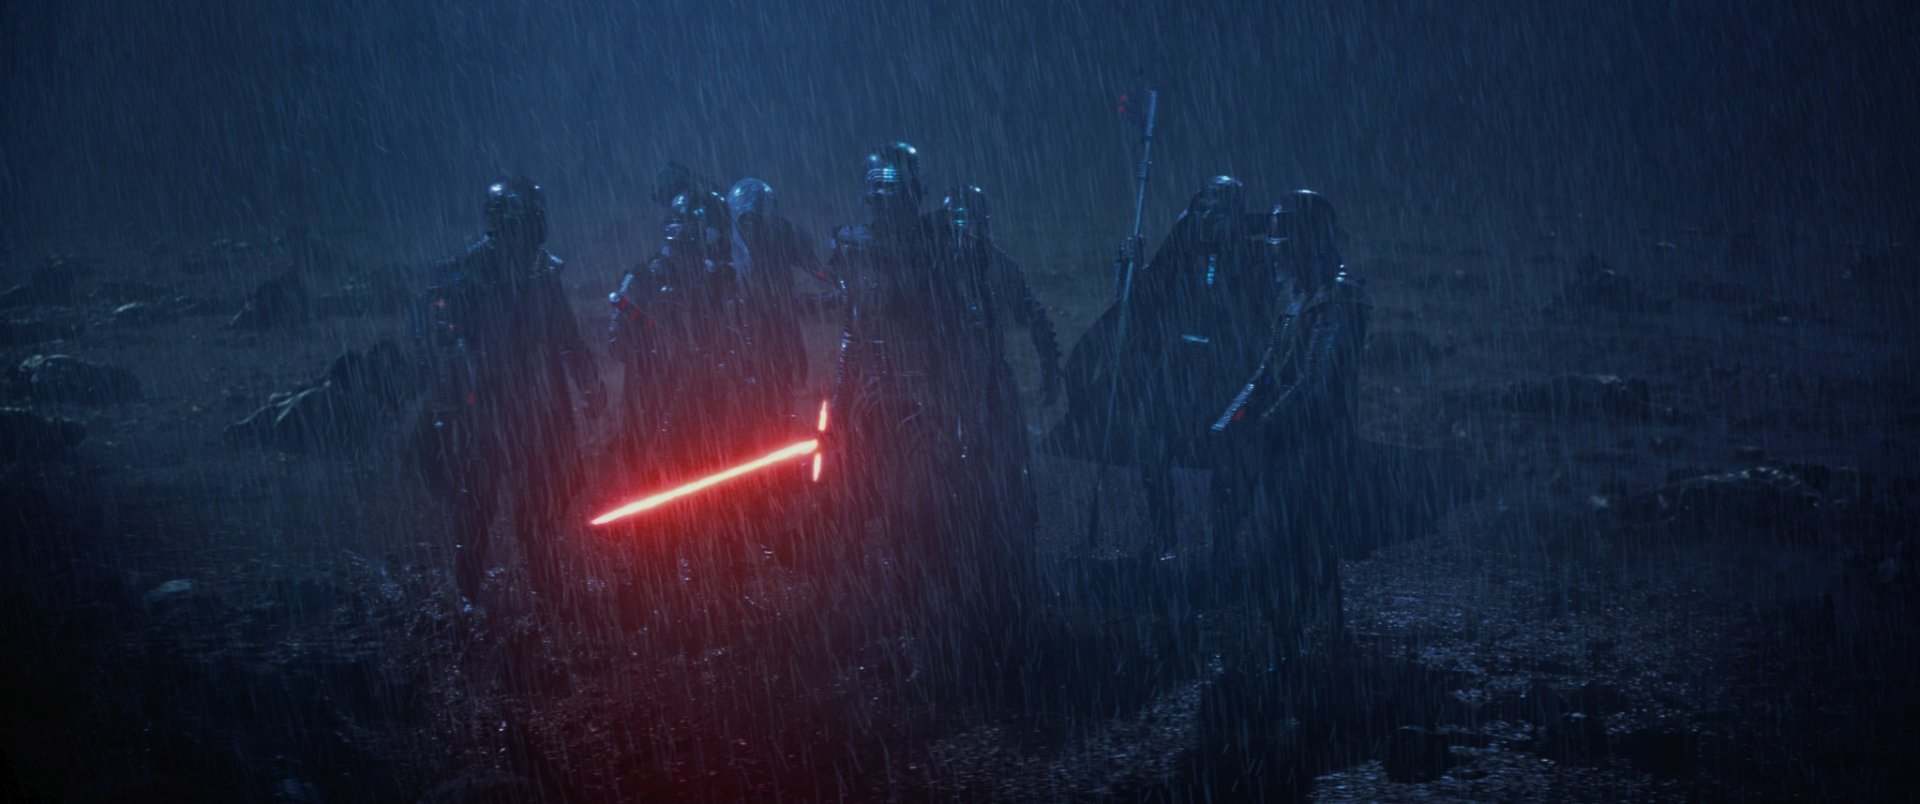 Movie - Star Wars Episode VII: The Force Awakens  Star Wars Kylo Ren Lightsaber Wallpaper